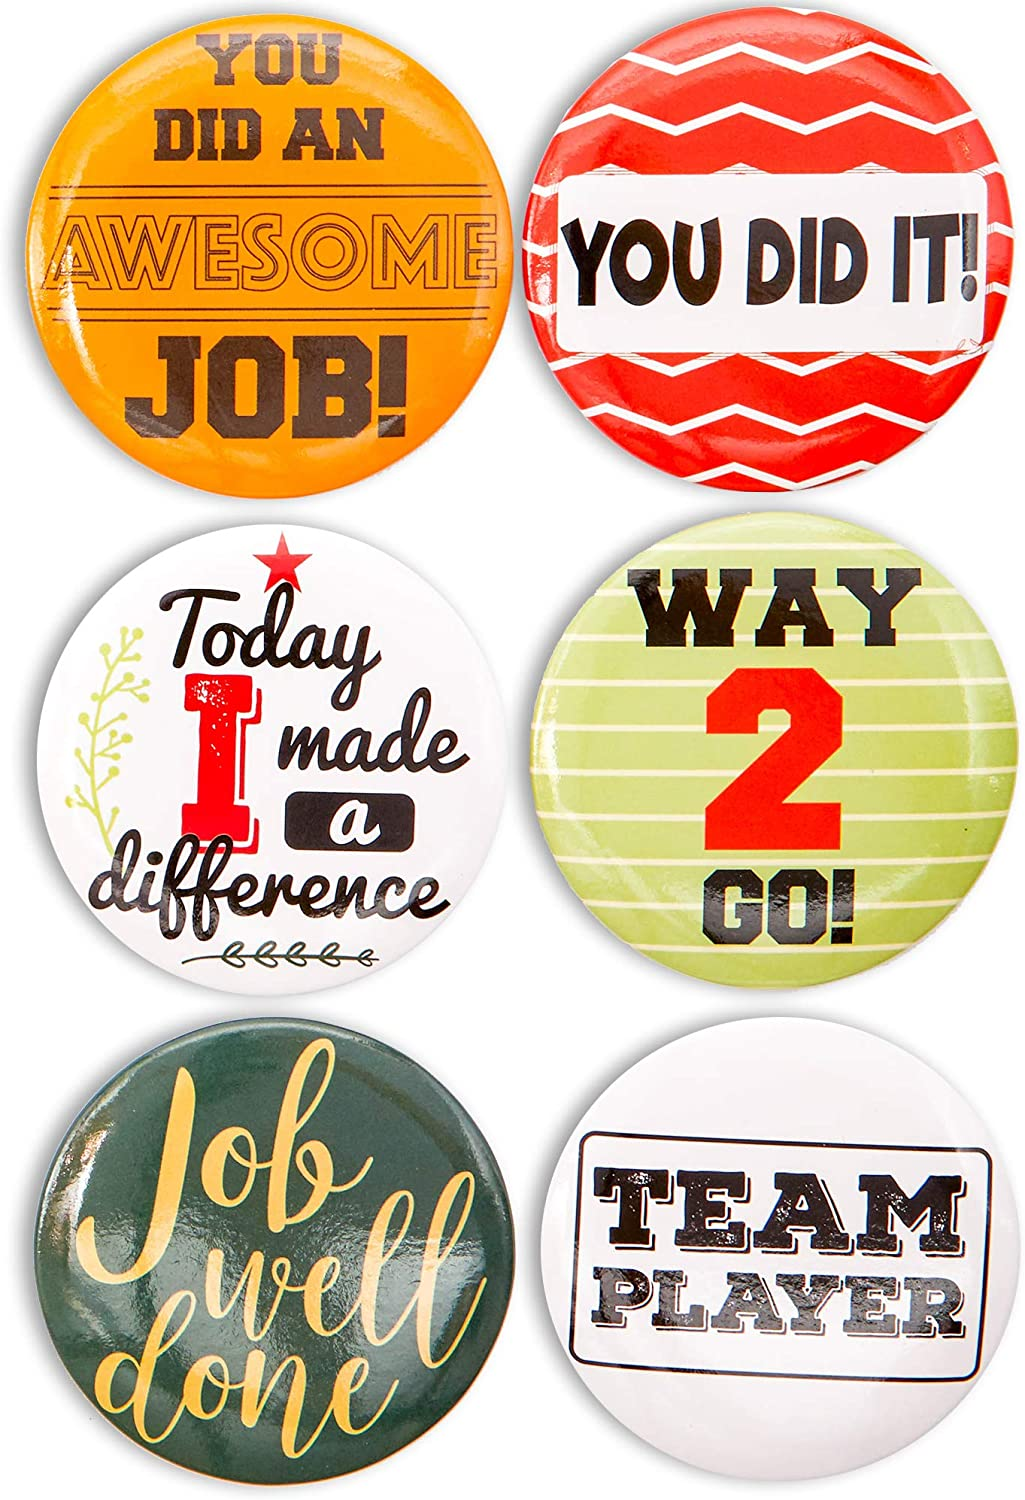 Blue Panda Round Recognition Buttons, Appreciation Pins in 6 Designs (2.25 Inches, 24-Pack)